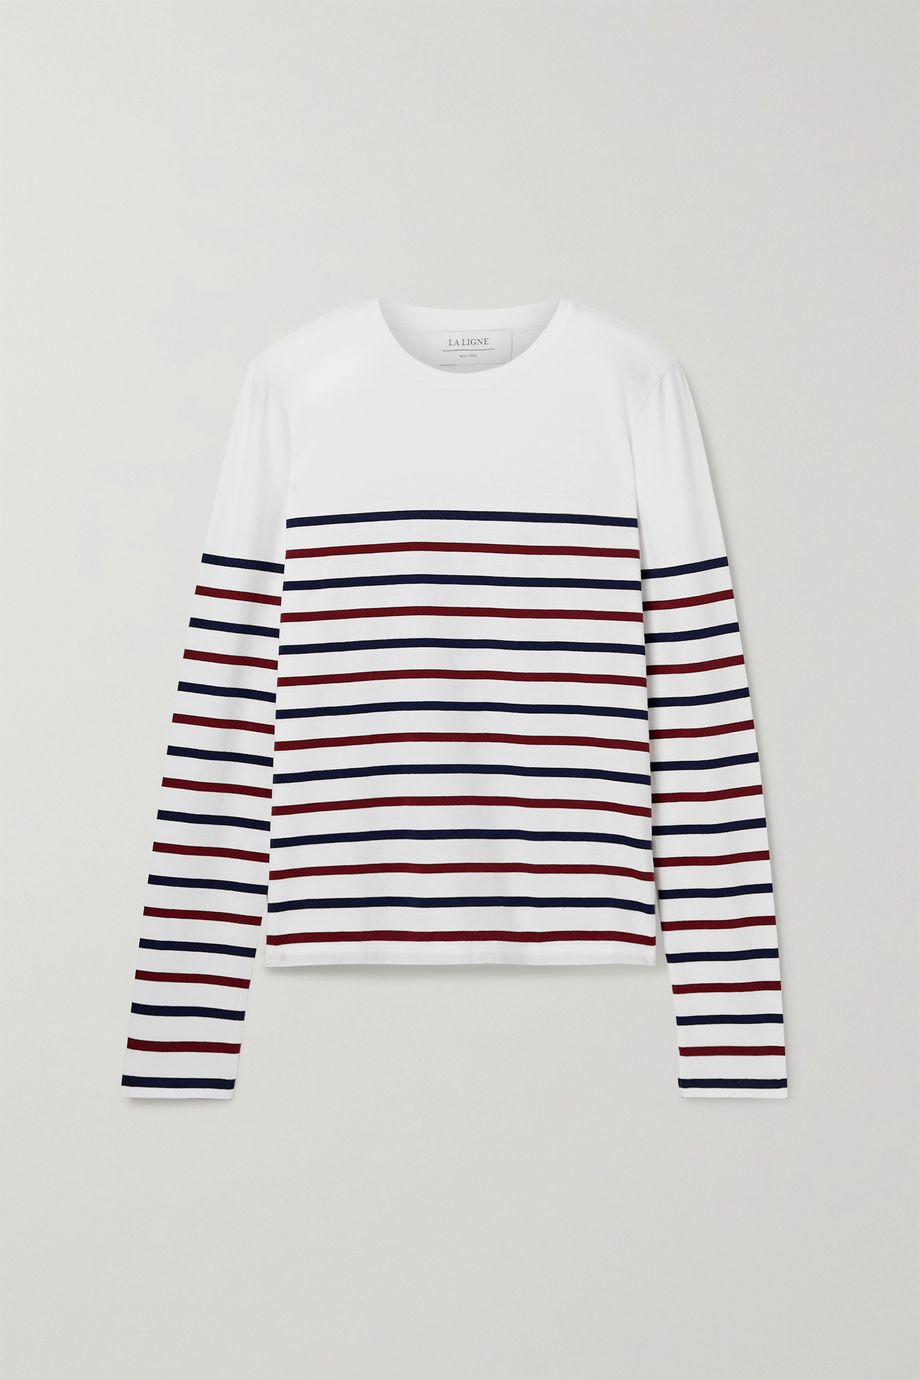 La Ligne Lean Lines striped cotton-jersey top